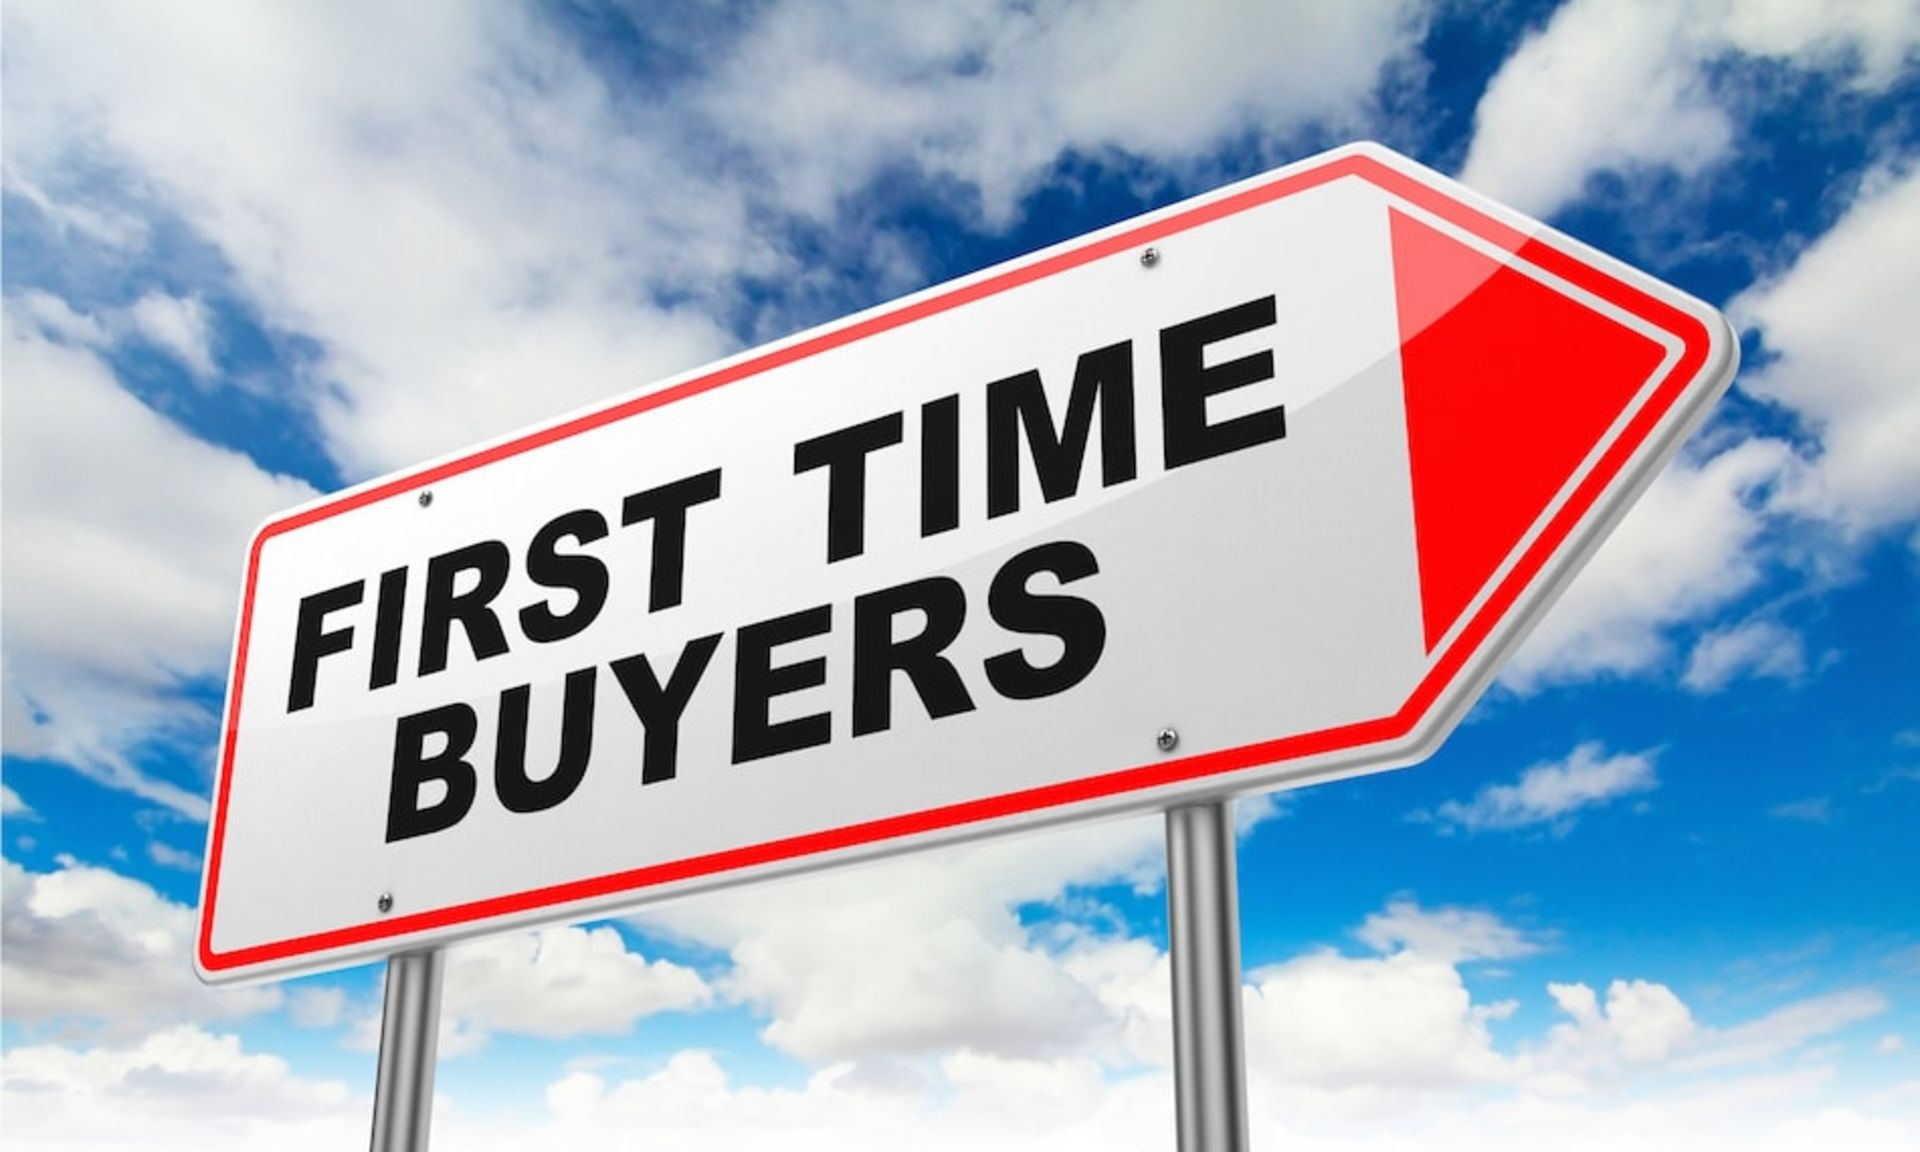 First time Home Buyers?